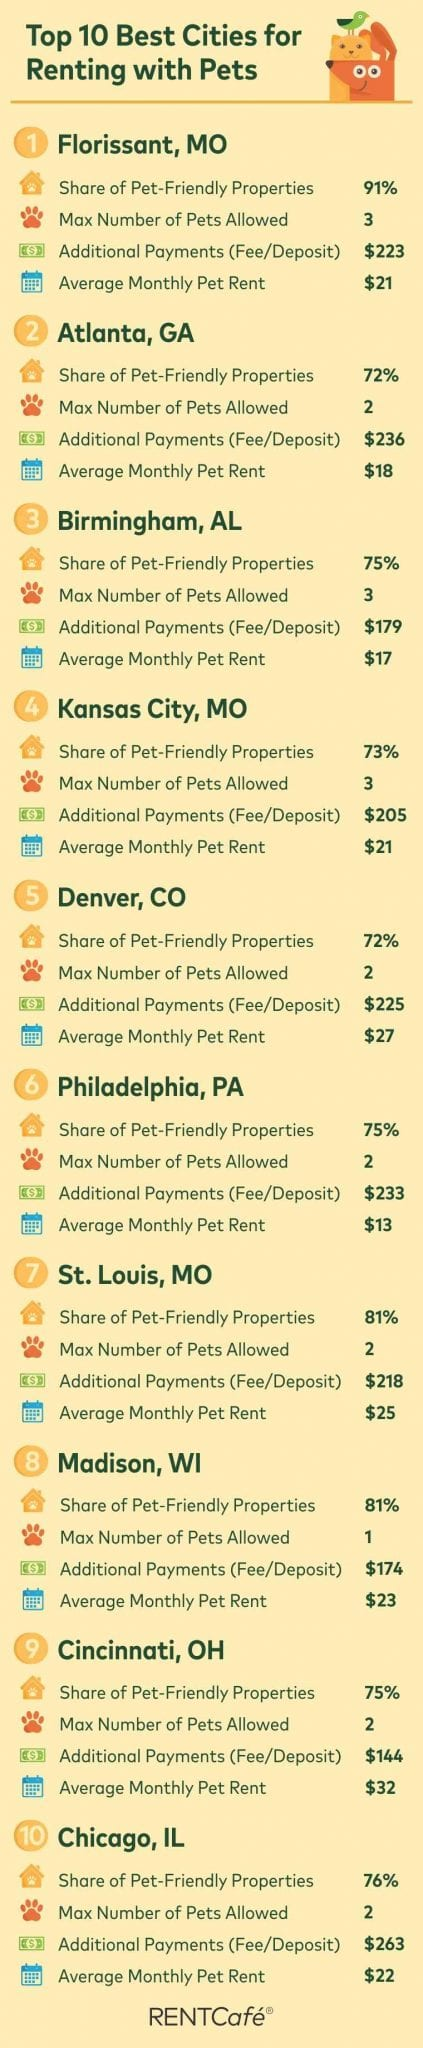 Best cities for renters with pets